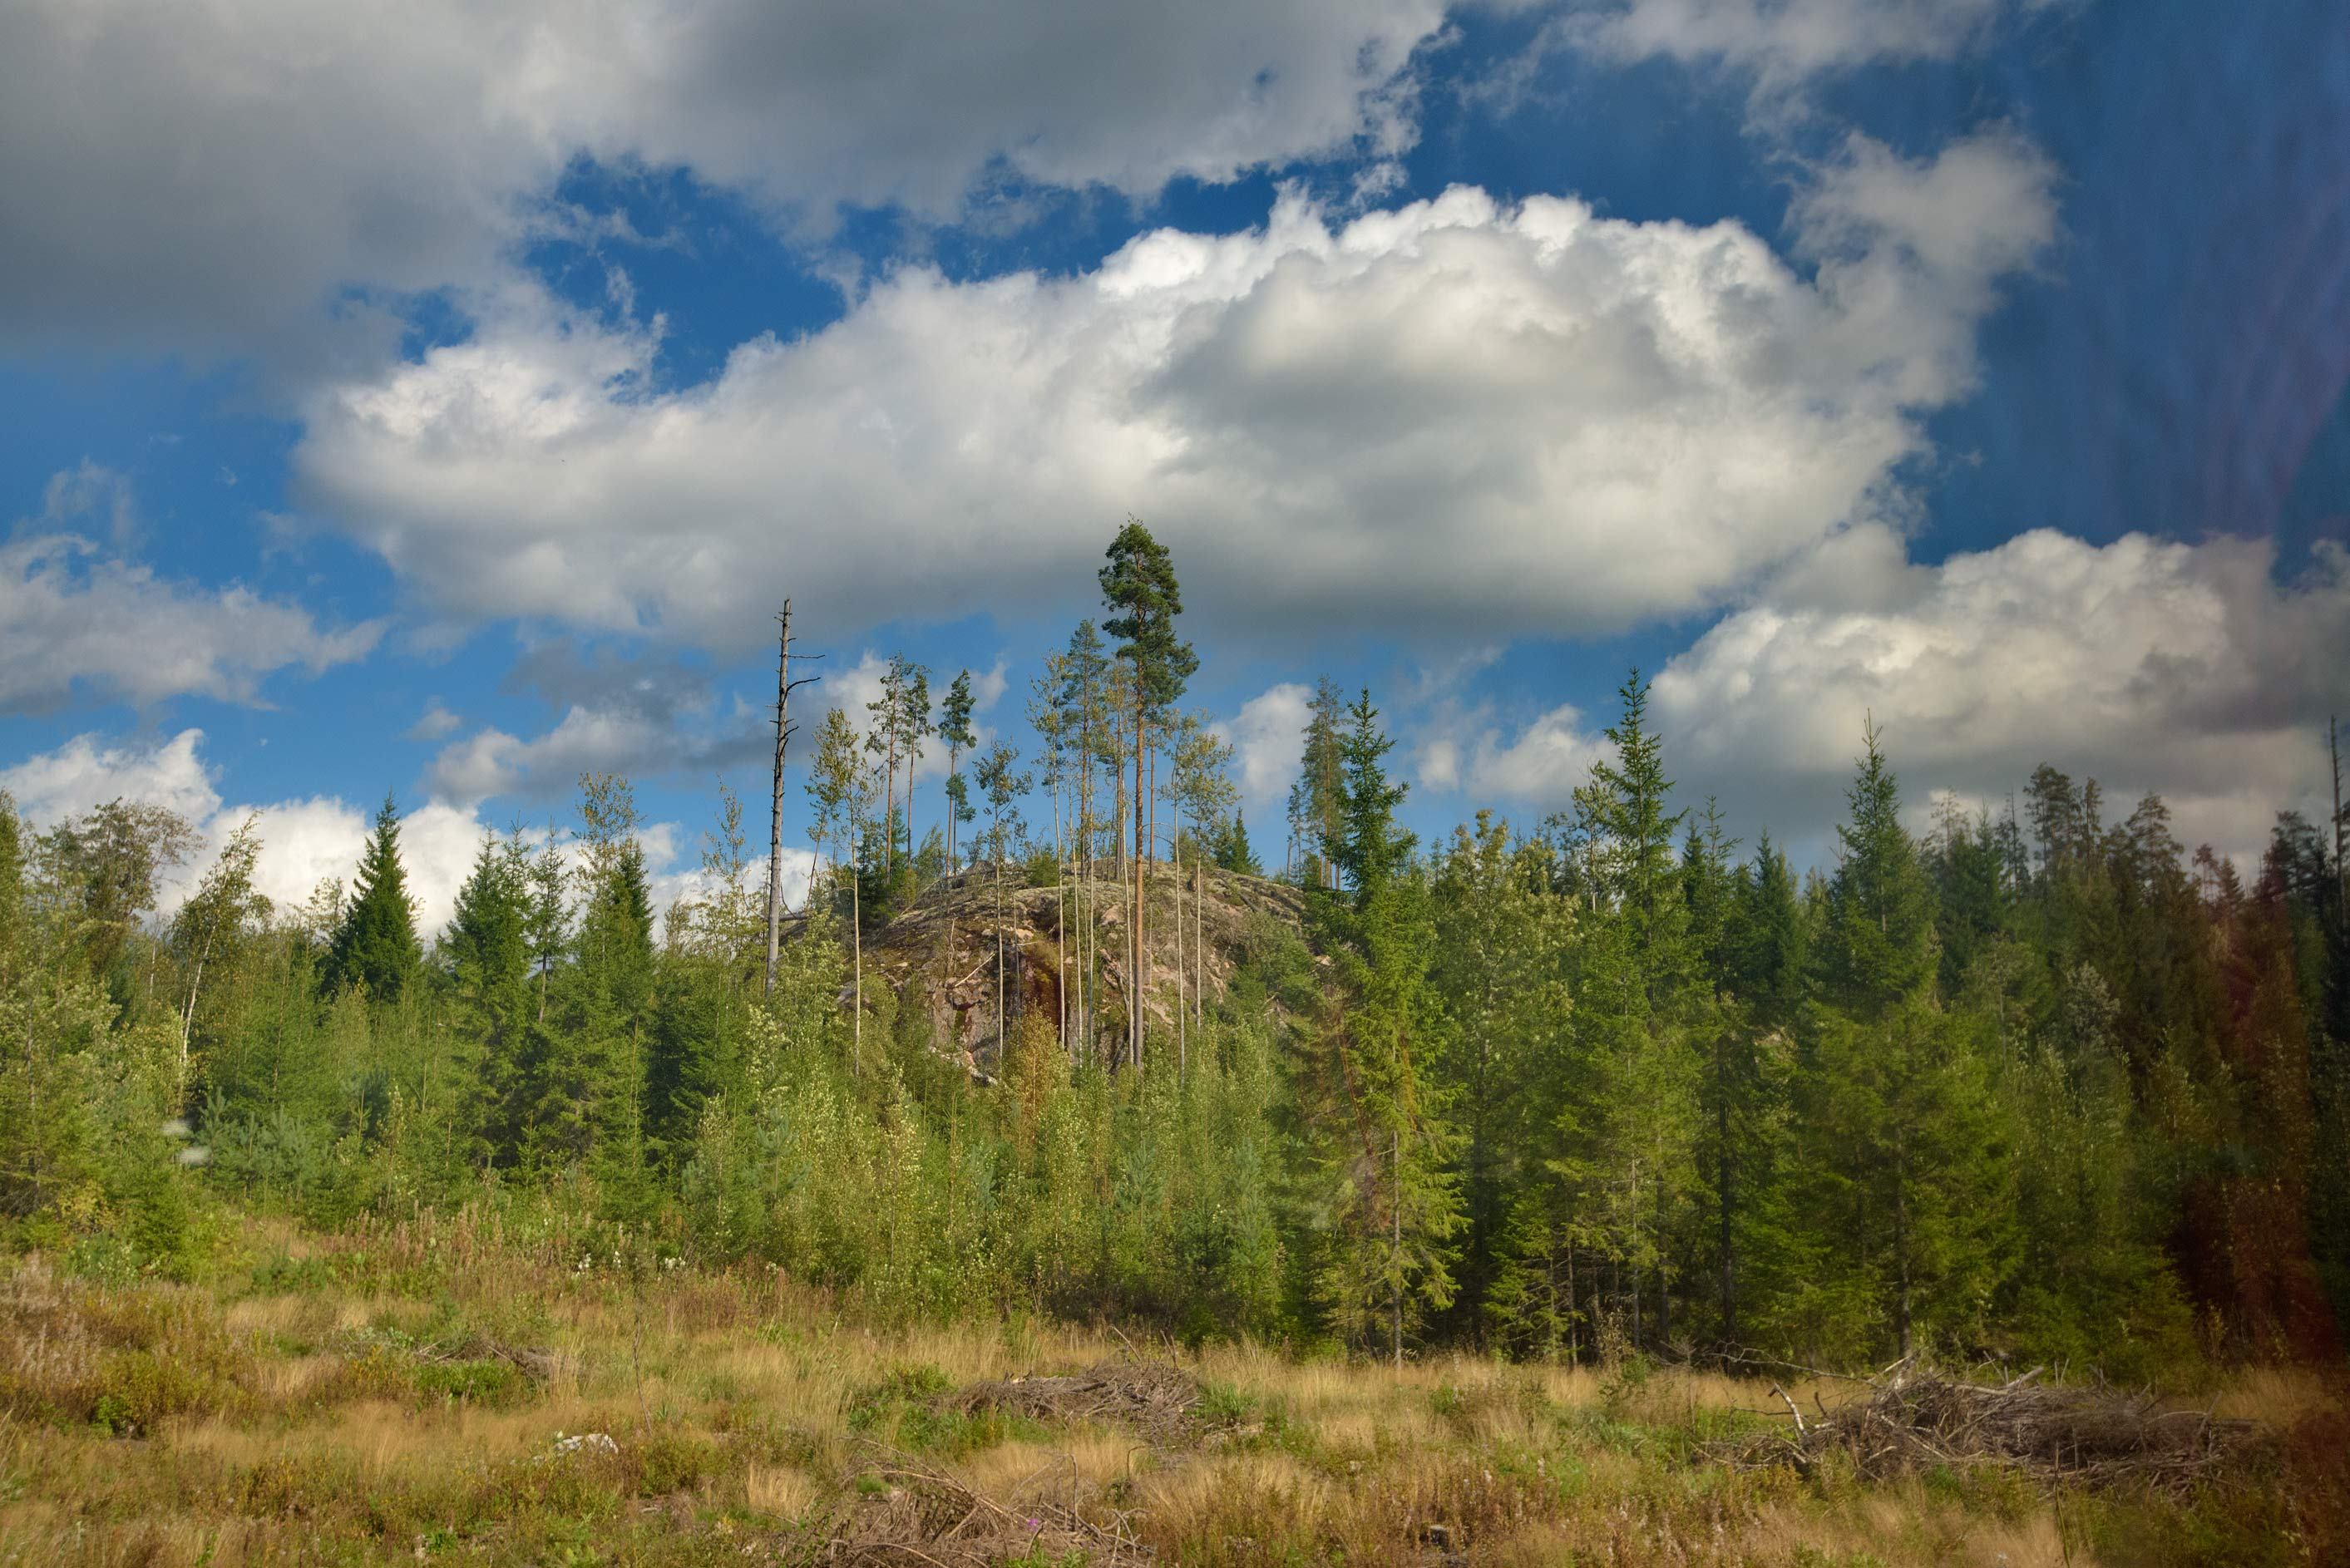 Forest near Kangaslammentie Rd., view from a tourist bus. Southern Finland